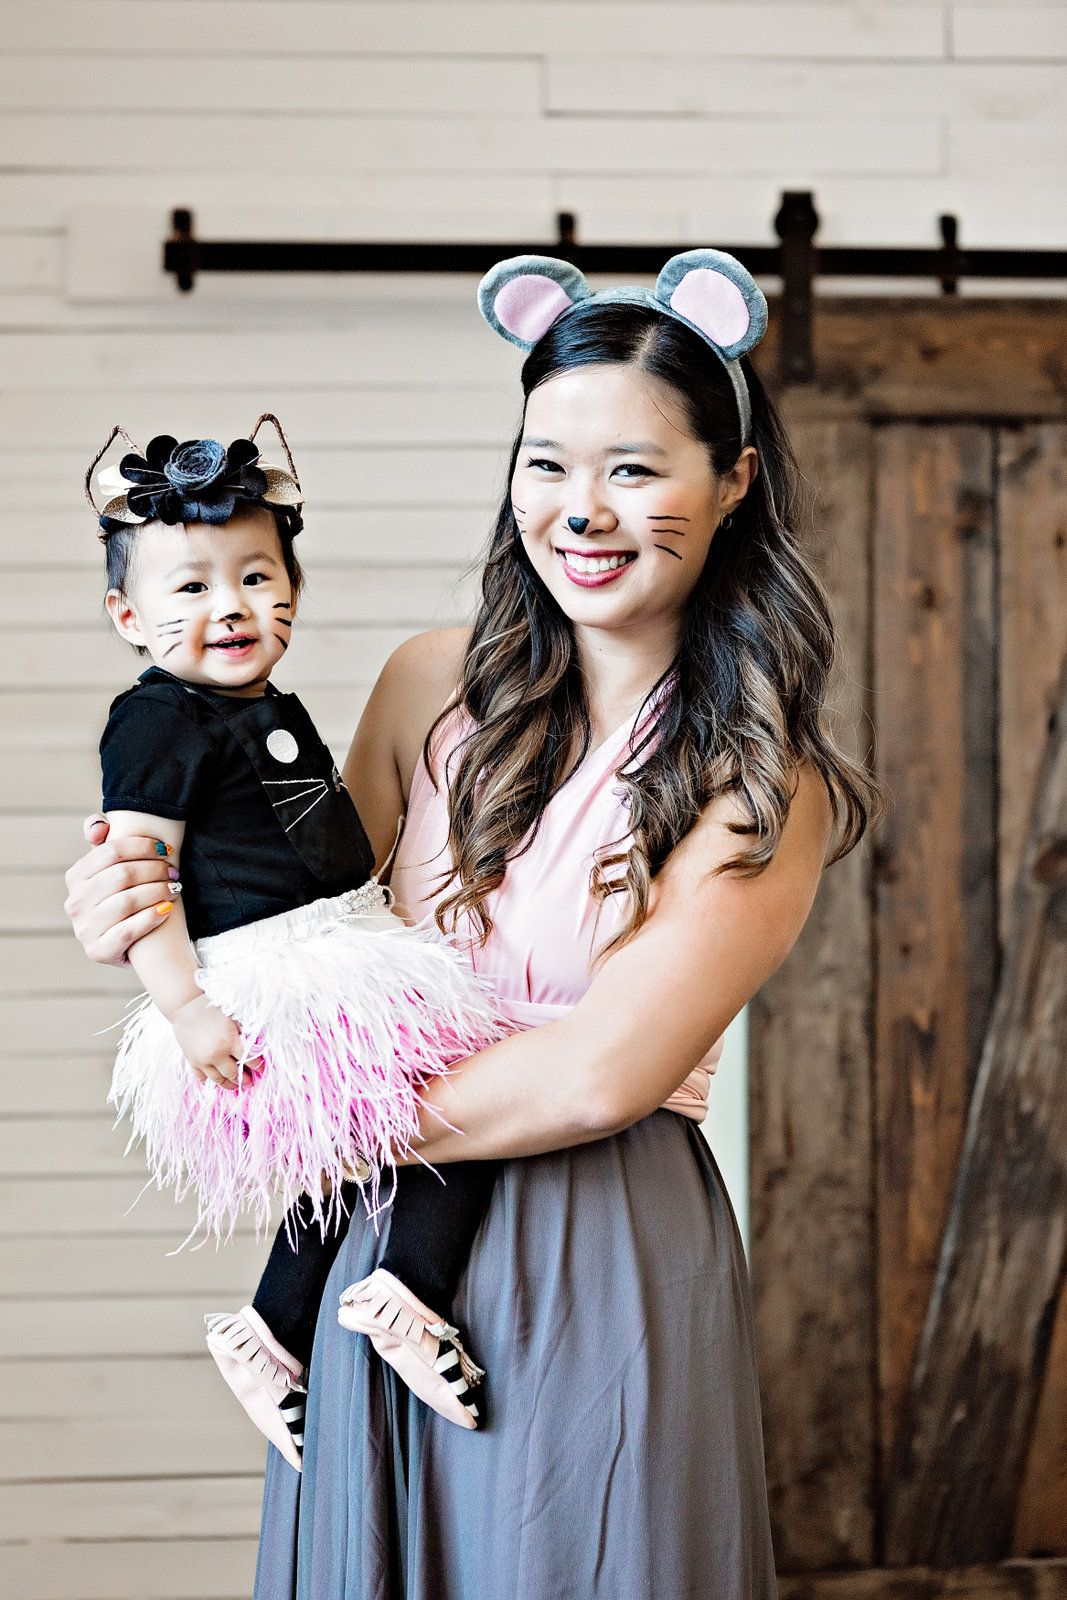 Mommy and me cat and mouse costumes  sc 1 st  Pinterest & Mommy and me cat and mouse costumes | Featuring You! | Pinterest ...